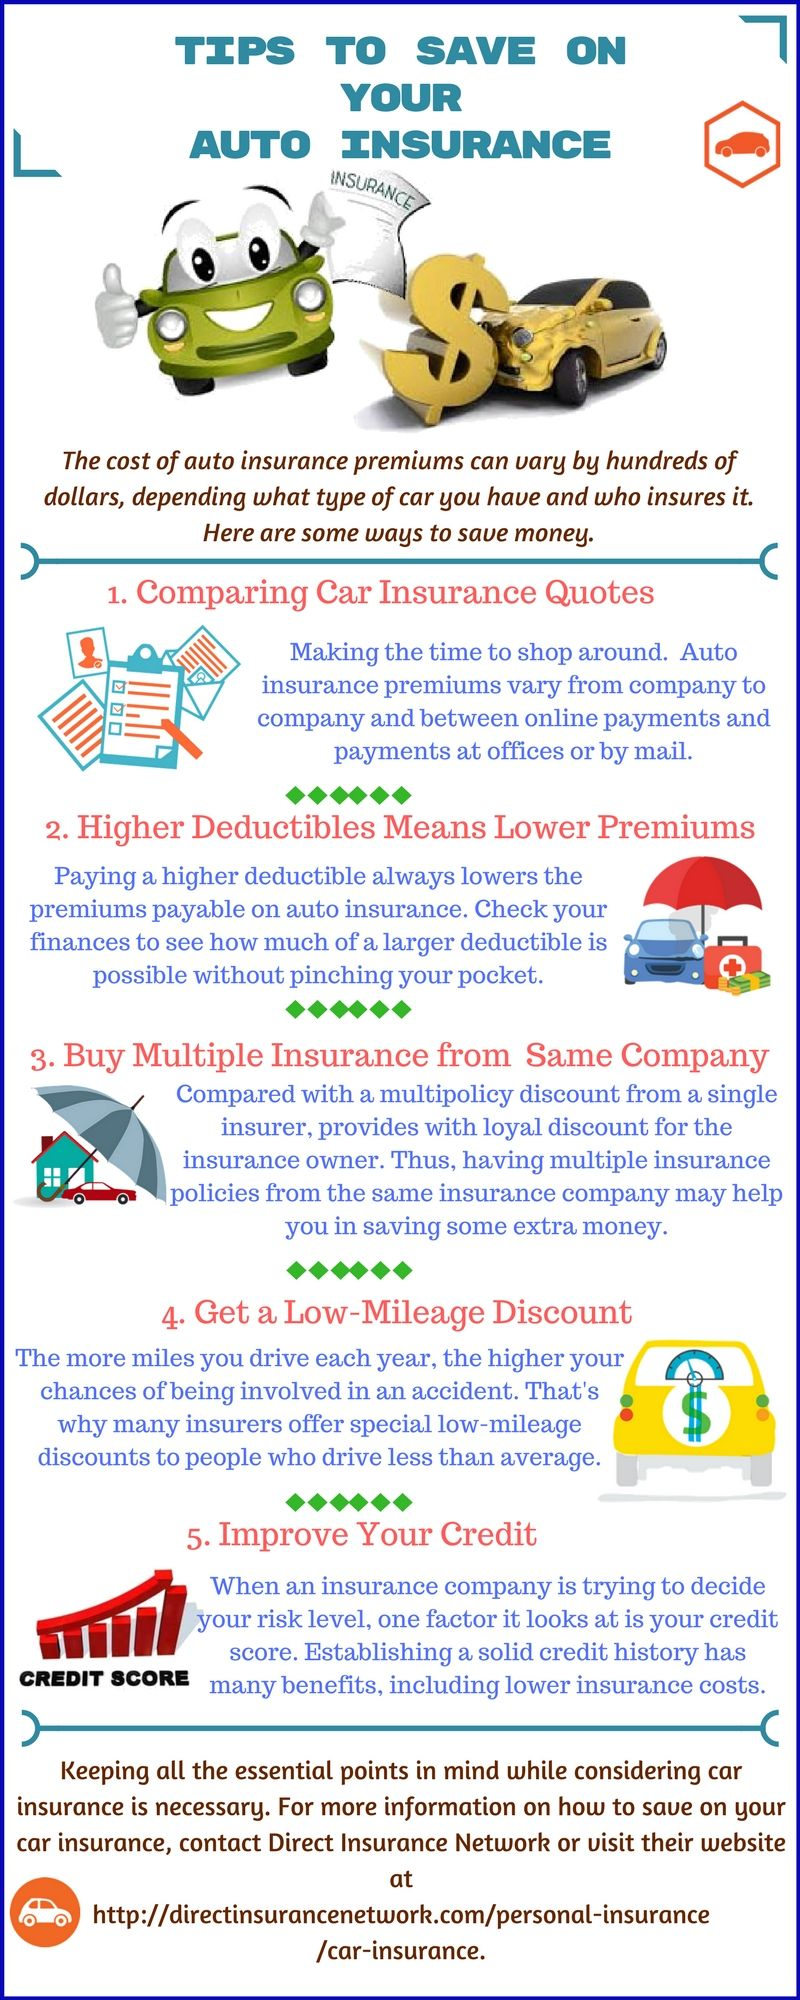 This Infographic Is About How You Can Save Money On The Auto